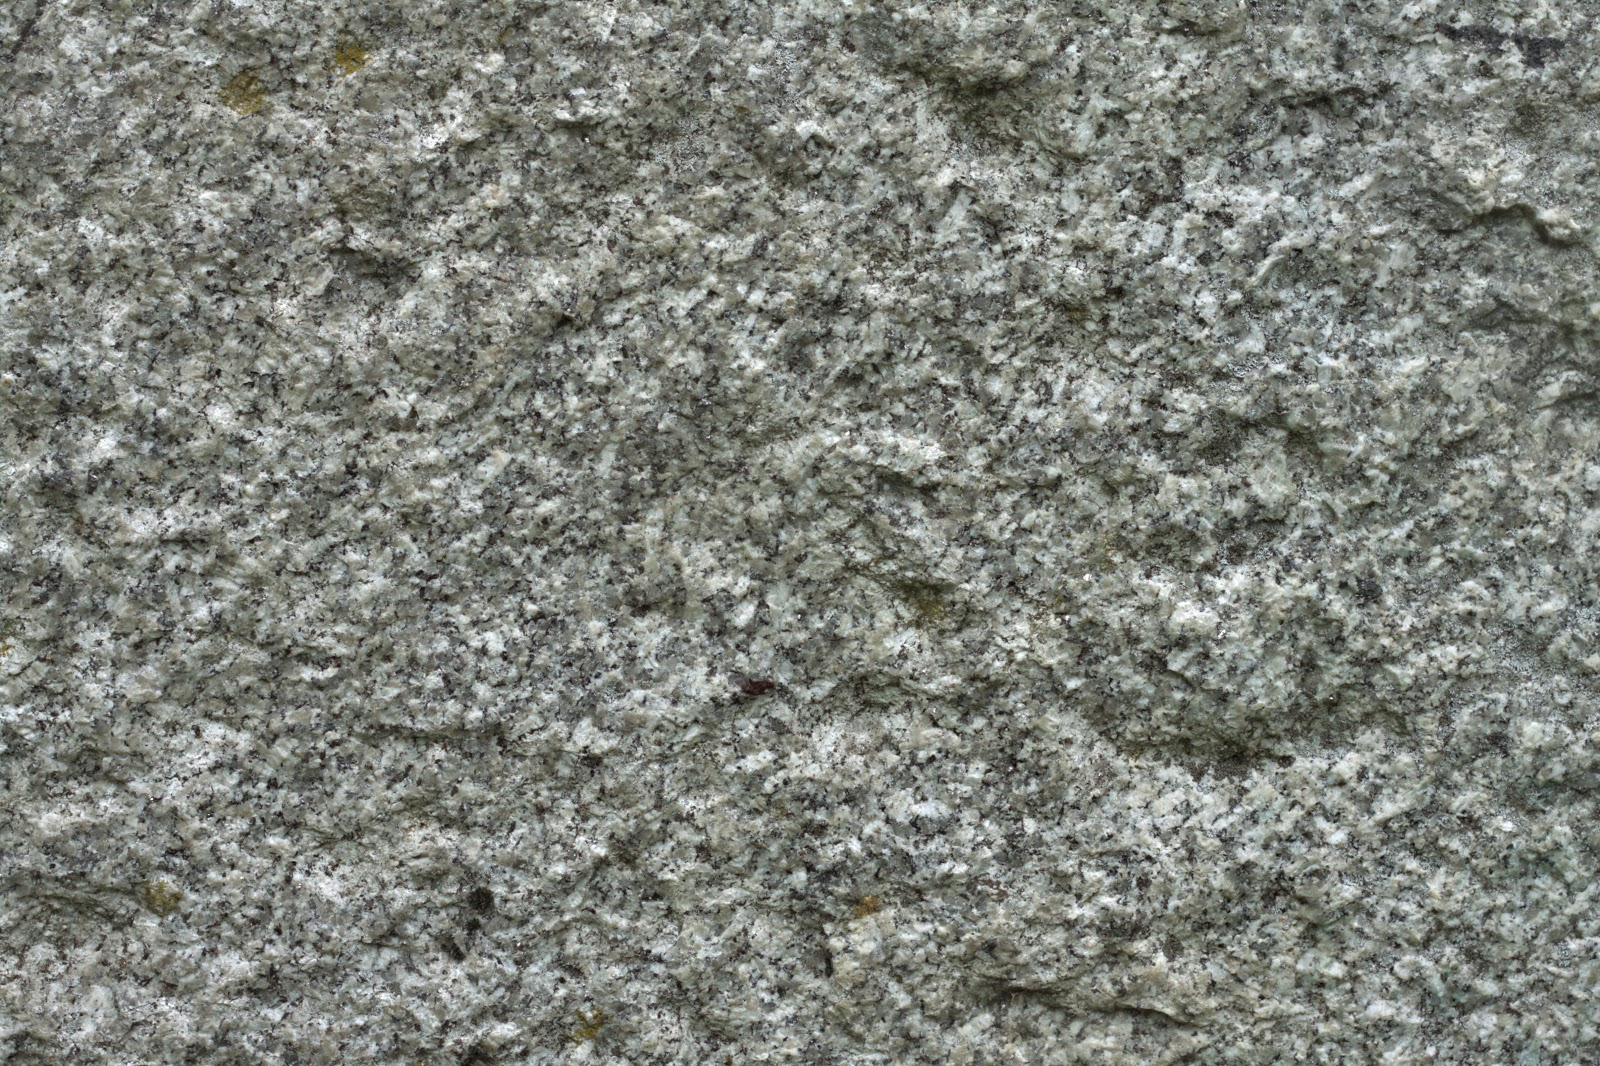 White Marble Texture Images Stock Photos amp Vectors